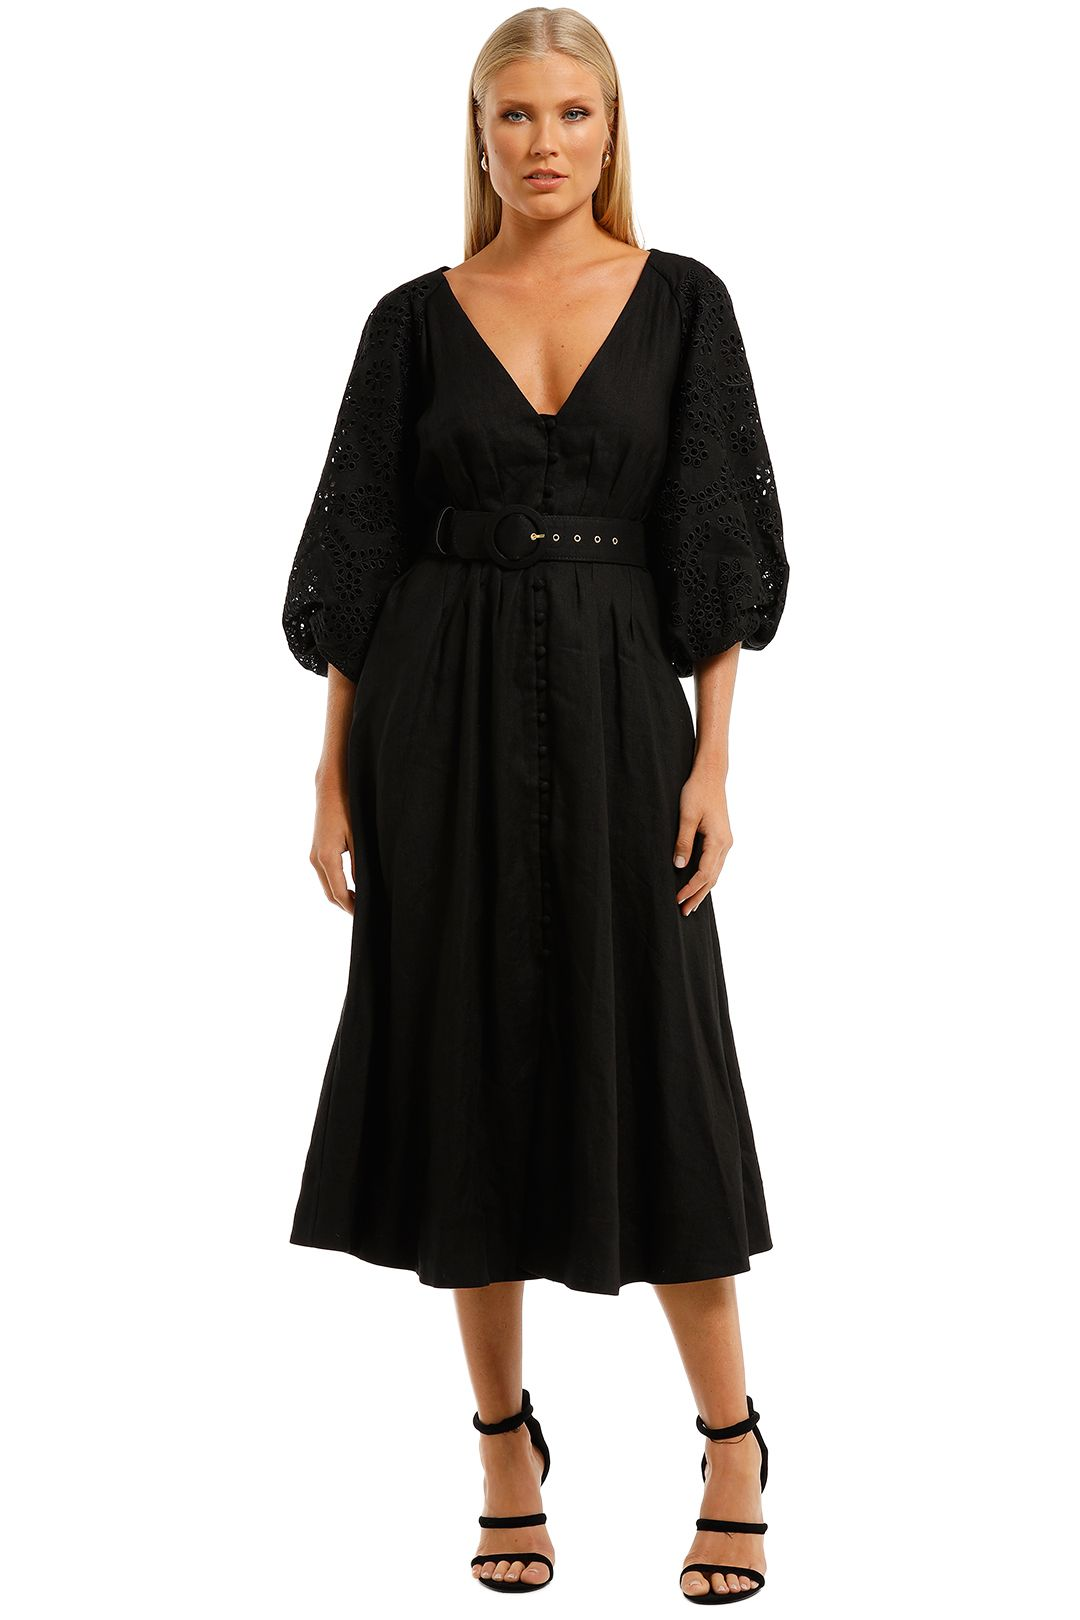 Nicholas-Hasina-Dress-Black-Front